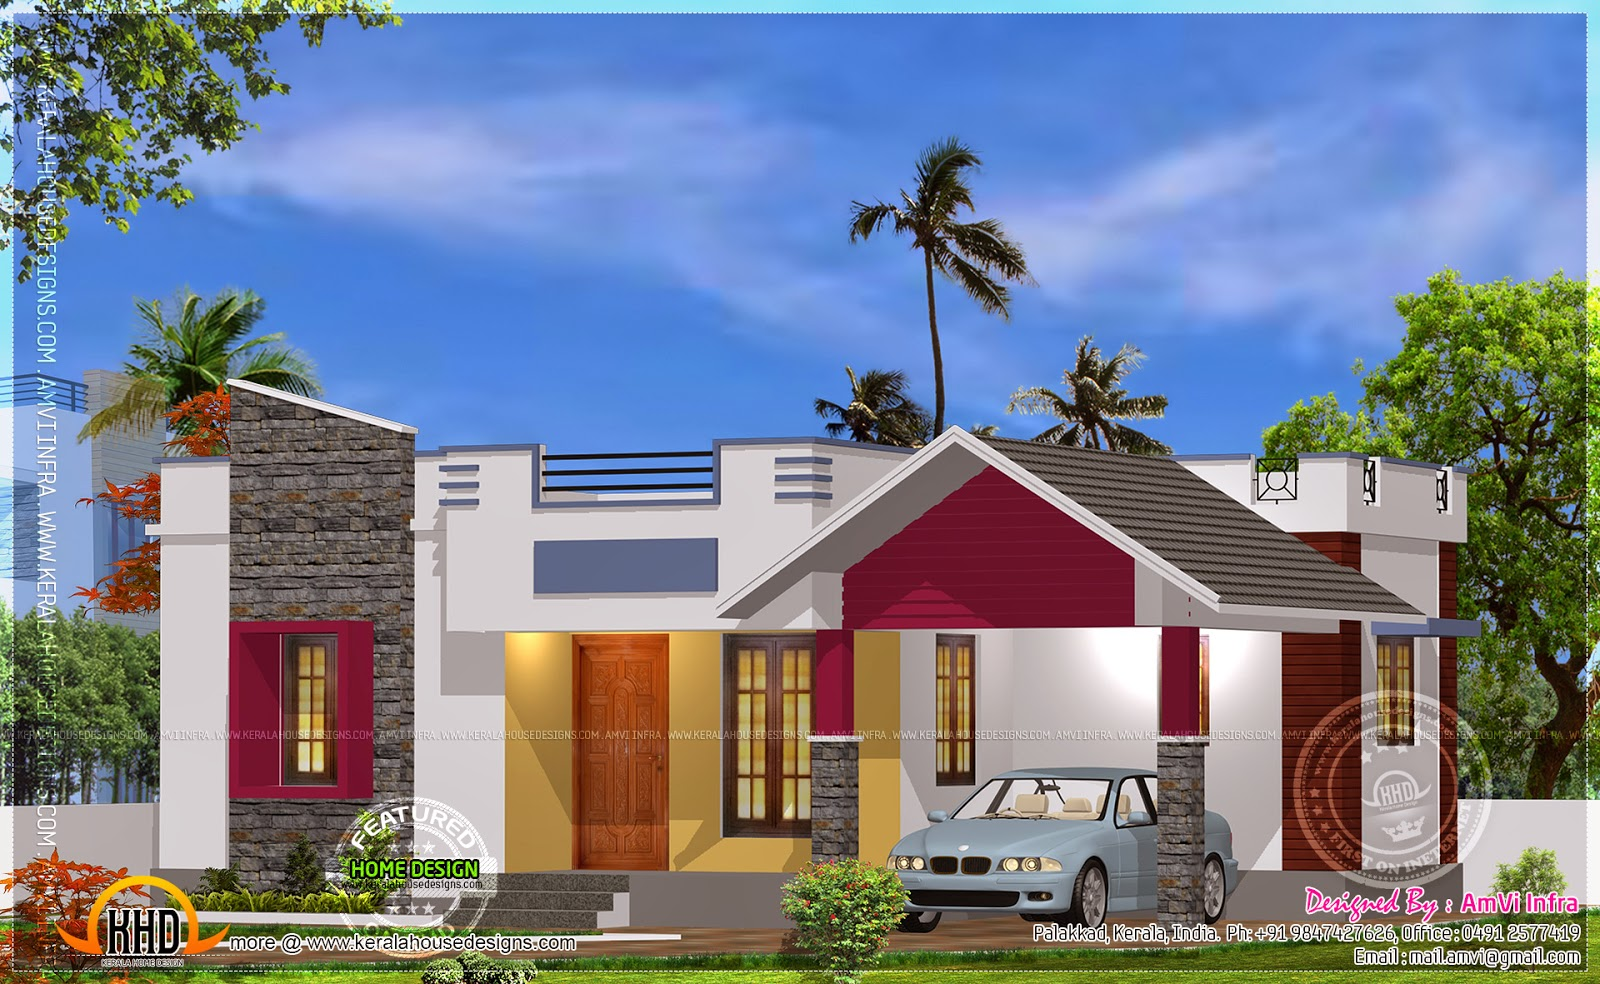 Stylish 900 Sq Ft New 2 Bedroom Kerala Home Design With Floor Plan Free Kerala Home Plans